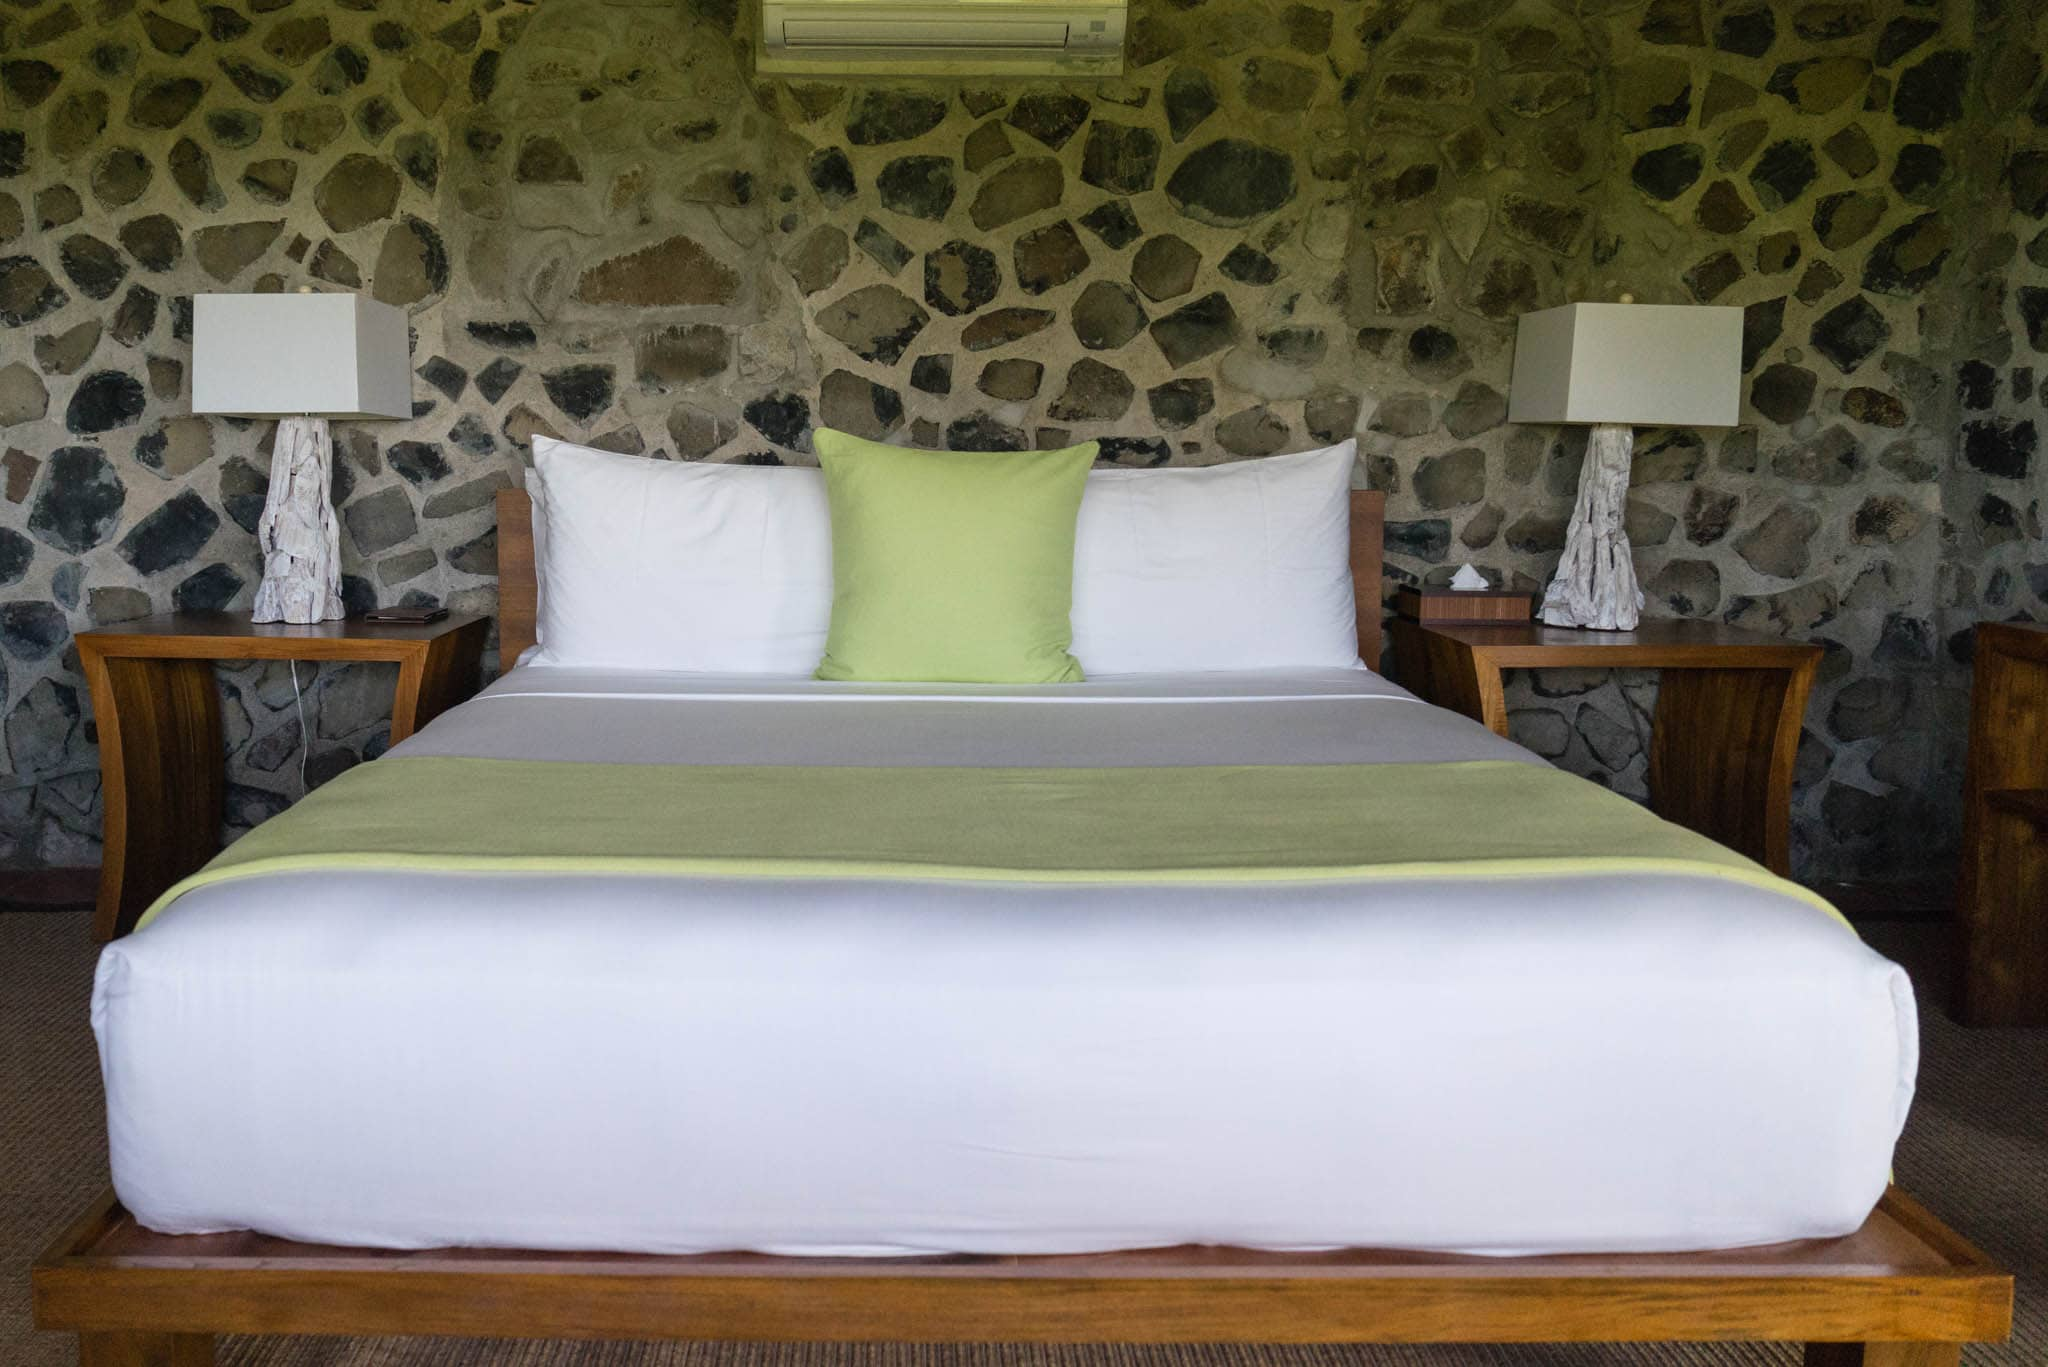 Were it not for the pools and beaches and snorkeling and sailing and dining, it'd be difficult to get out of this bed.